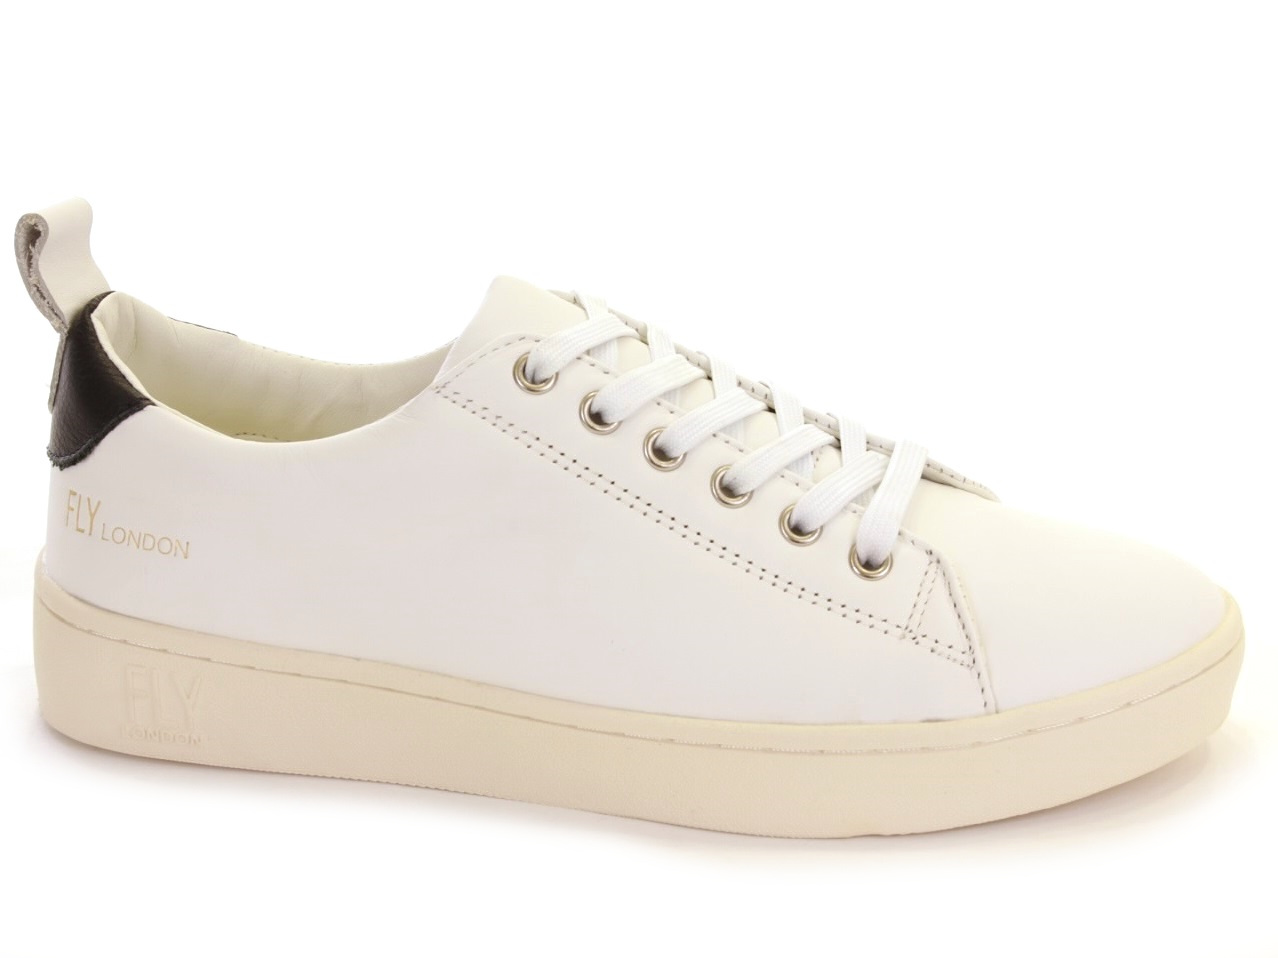 Sneakers and Espadrilles Fly London - 339 MACO833